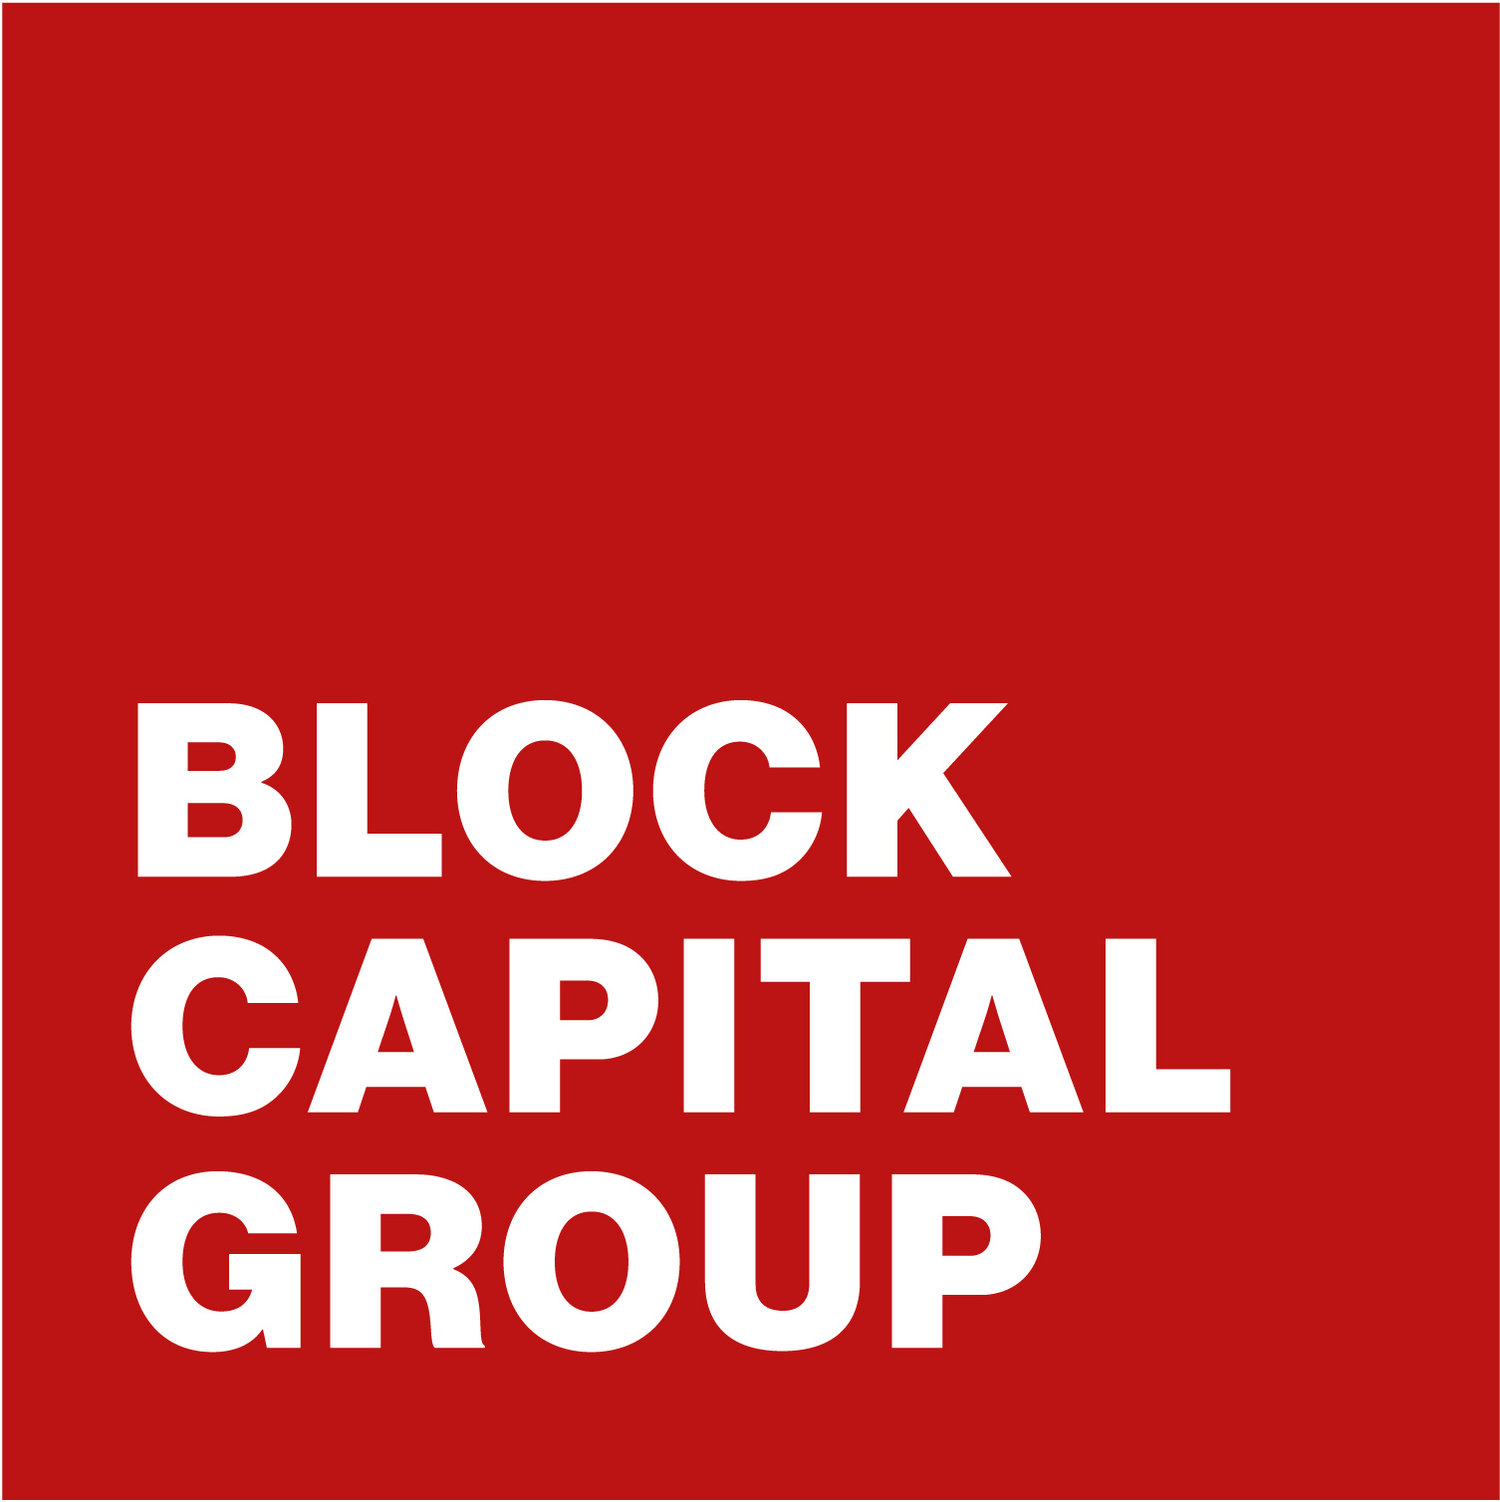 Block Capital Group